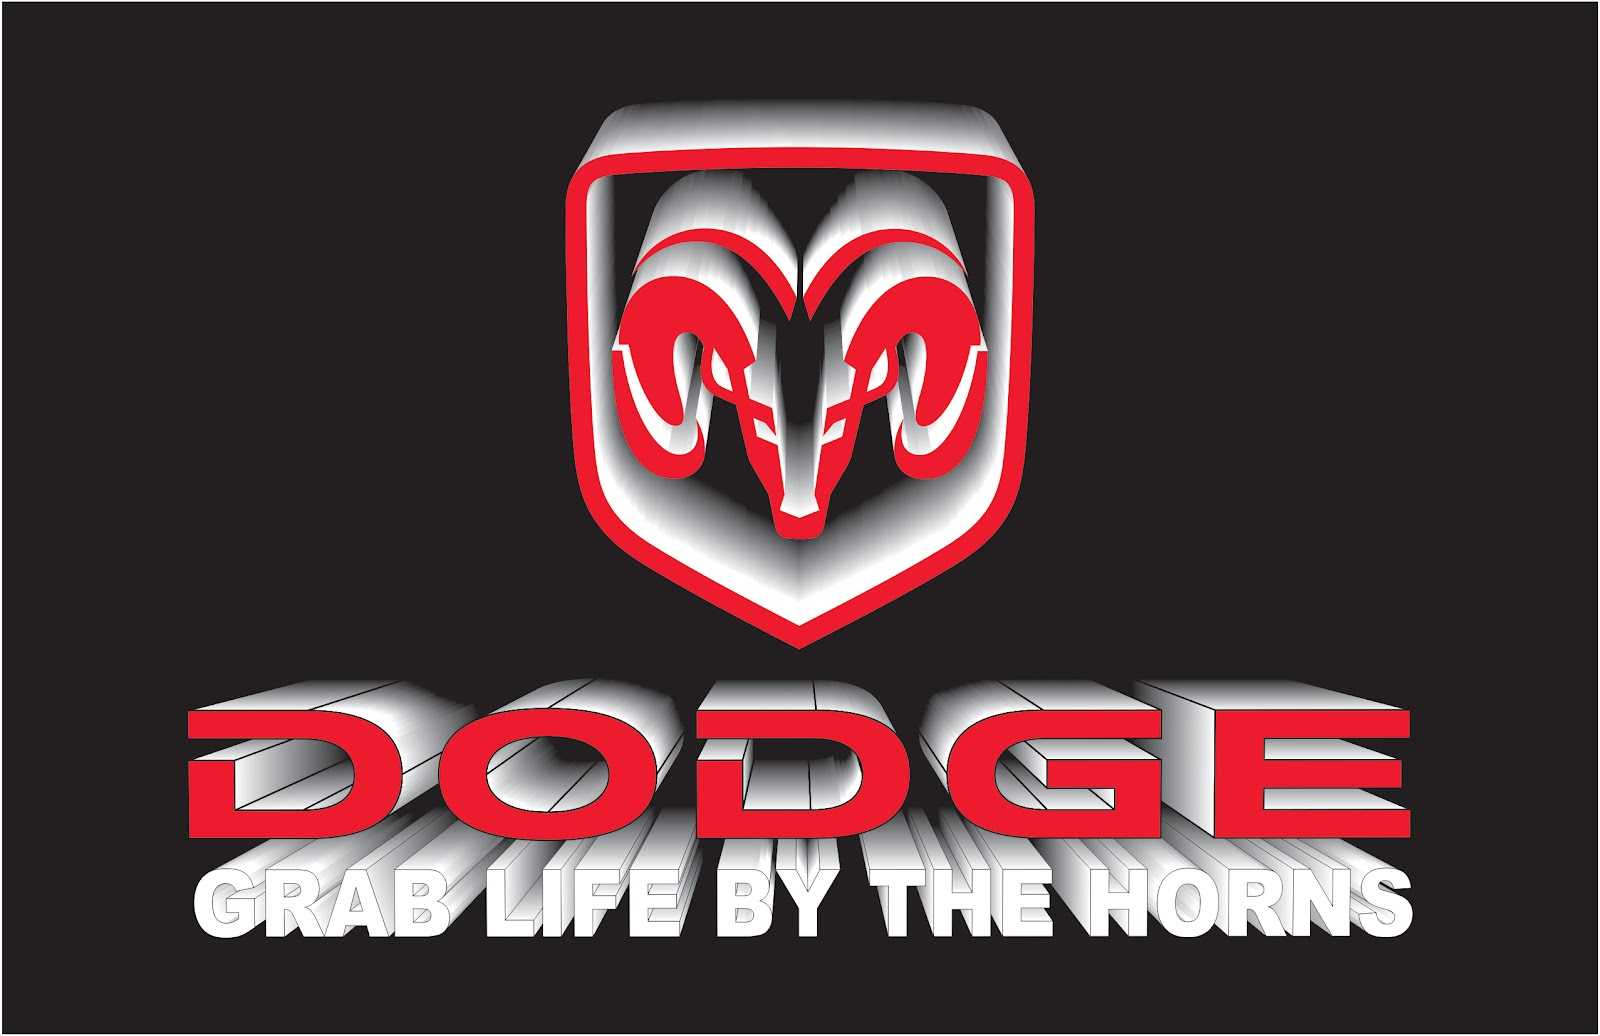 download dodge ram logo wallpaper hd background listed in wallpaper 1600x1036